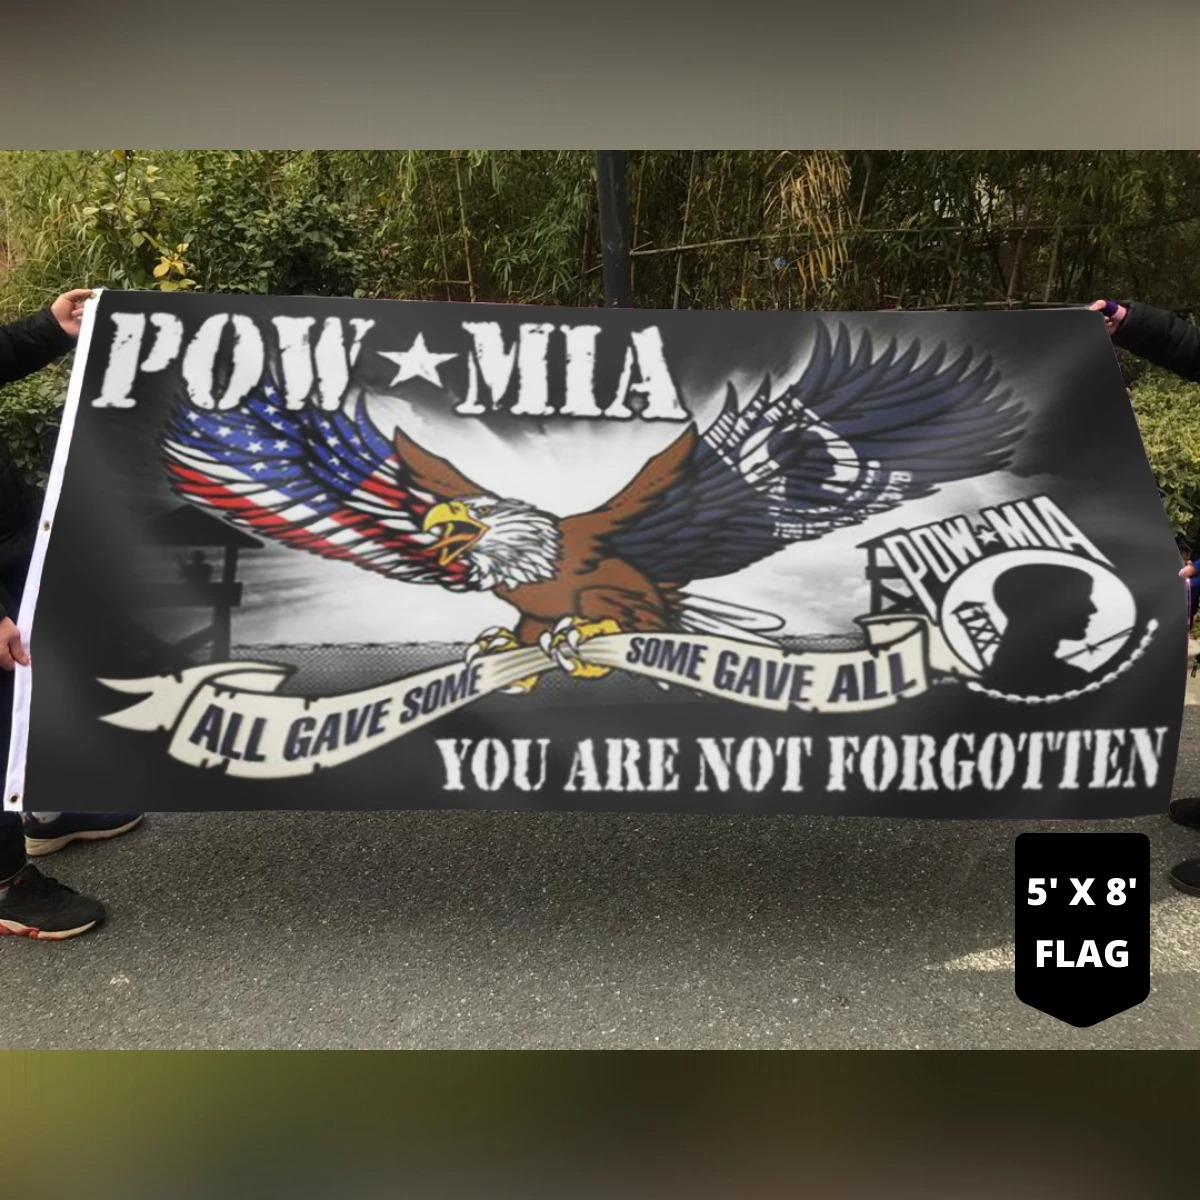 Pow mid all gave some some gave all you are not forgotten flag 8